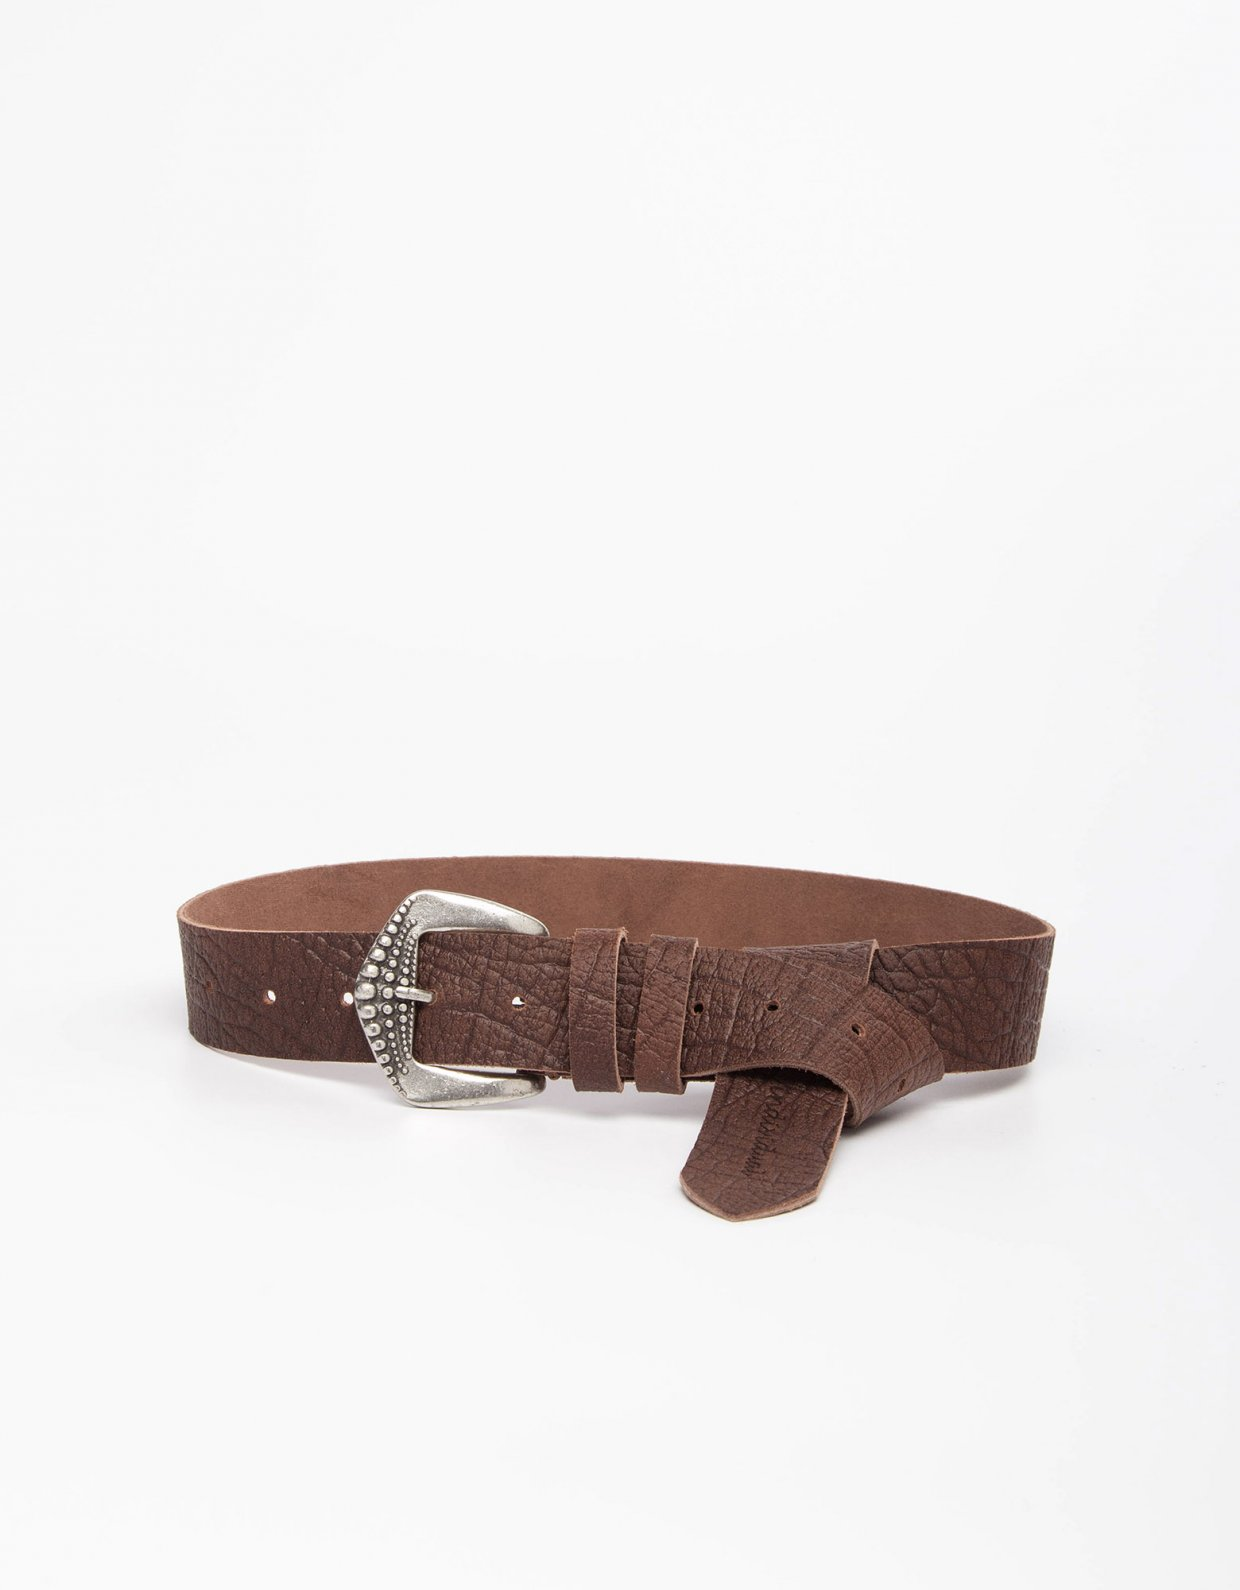 Individual Art Leather Physical brown/nickel belt